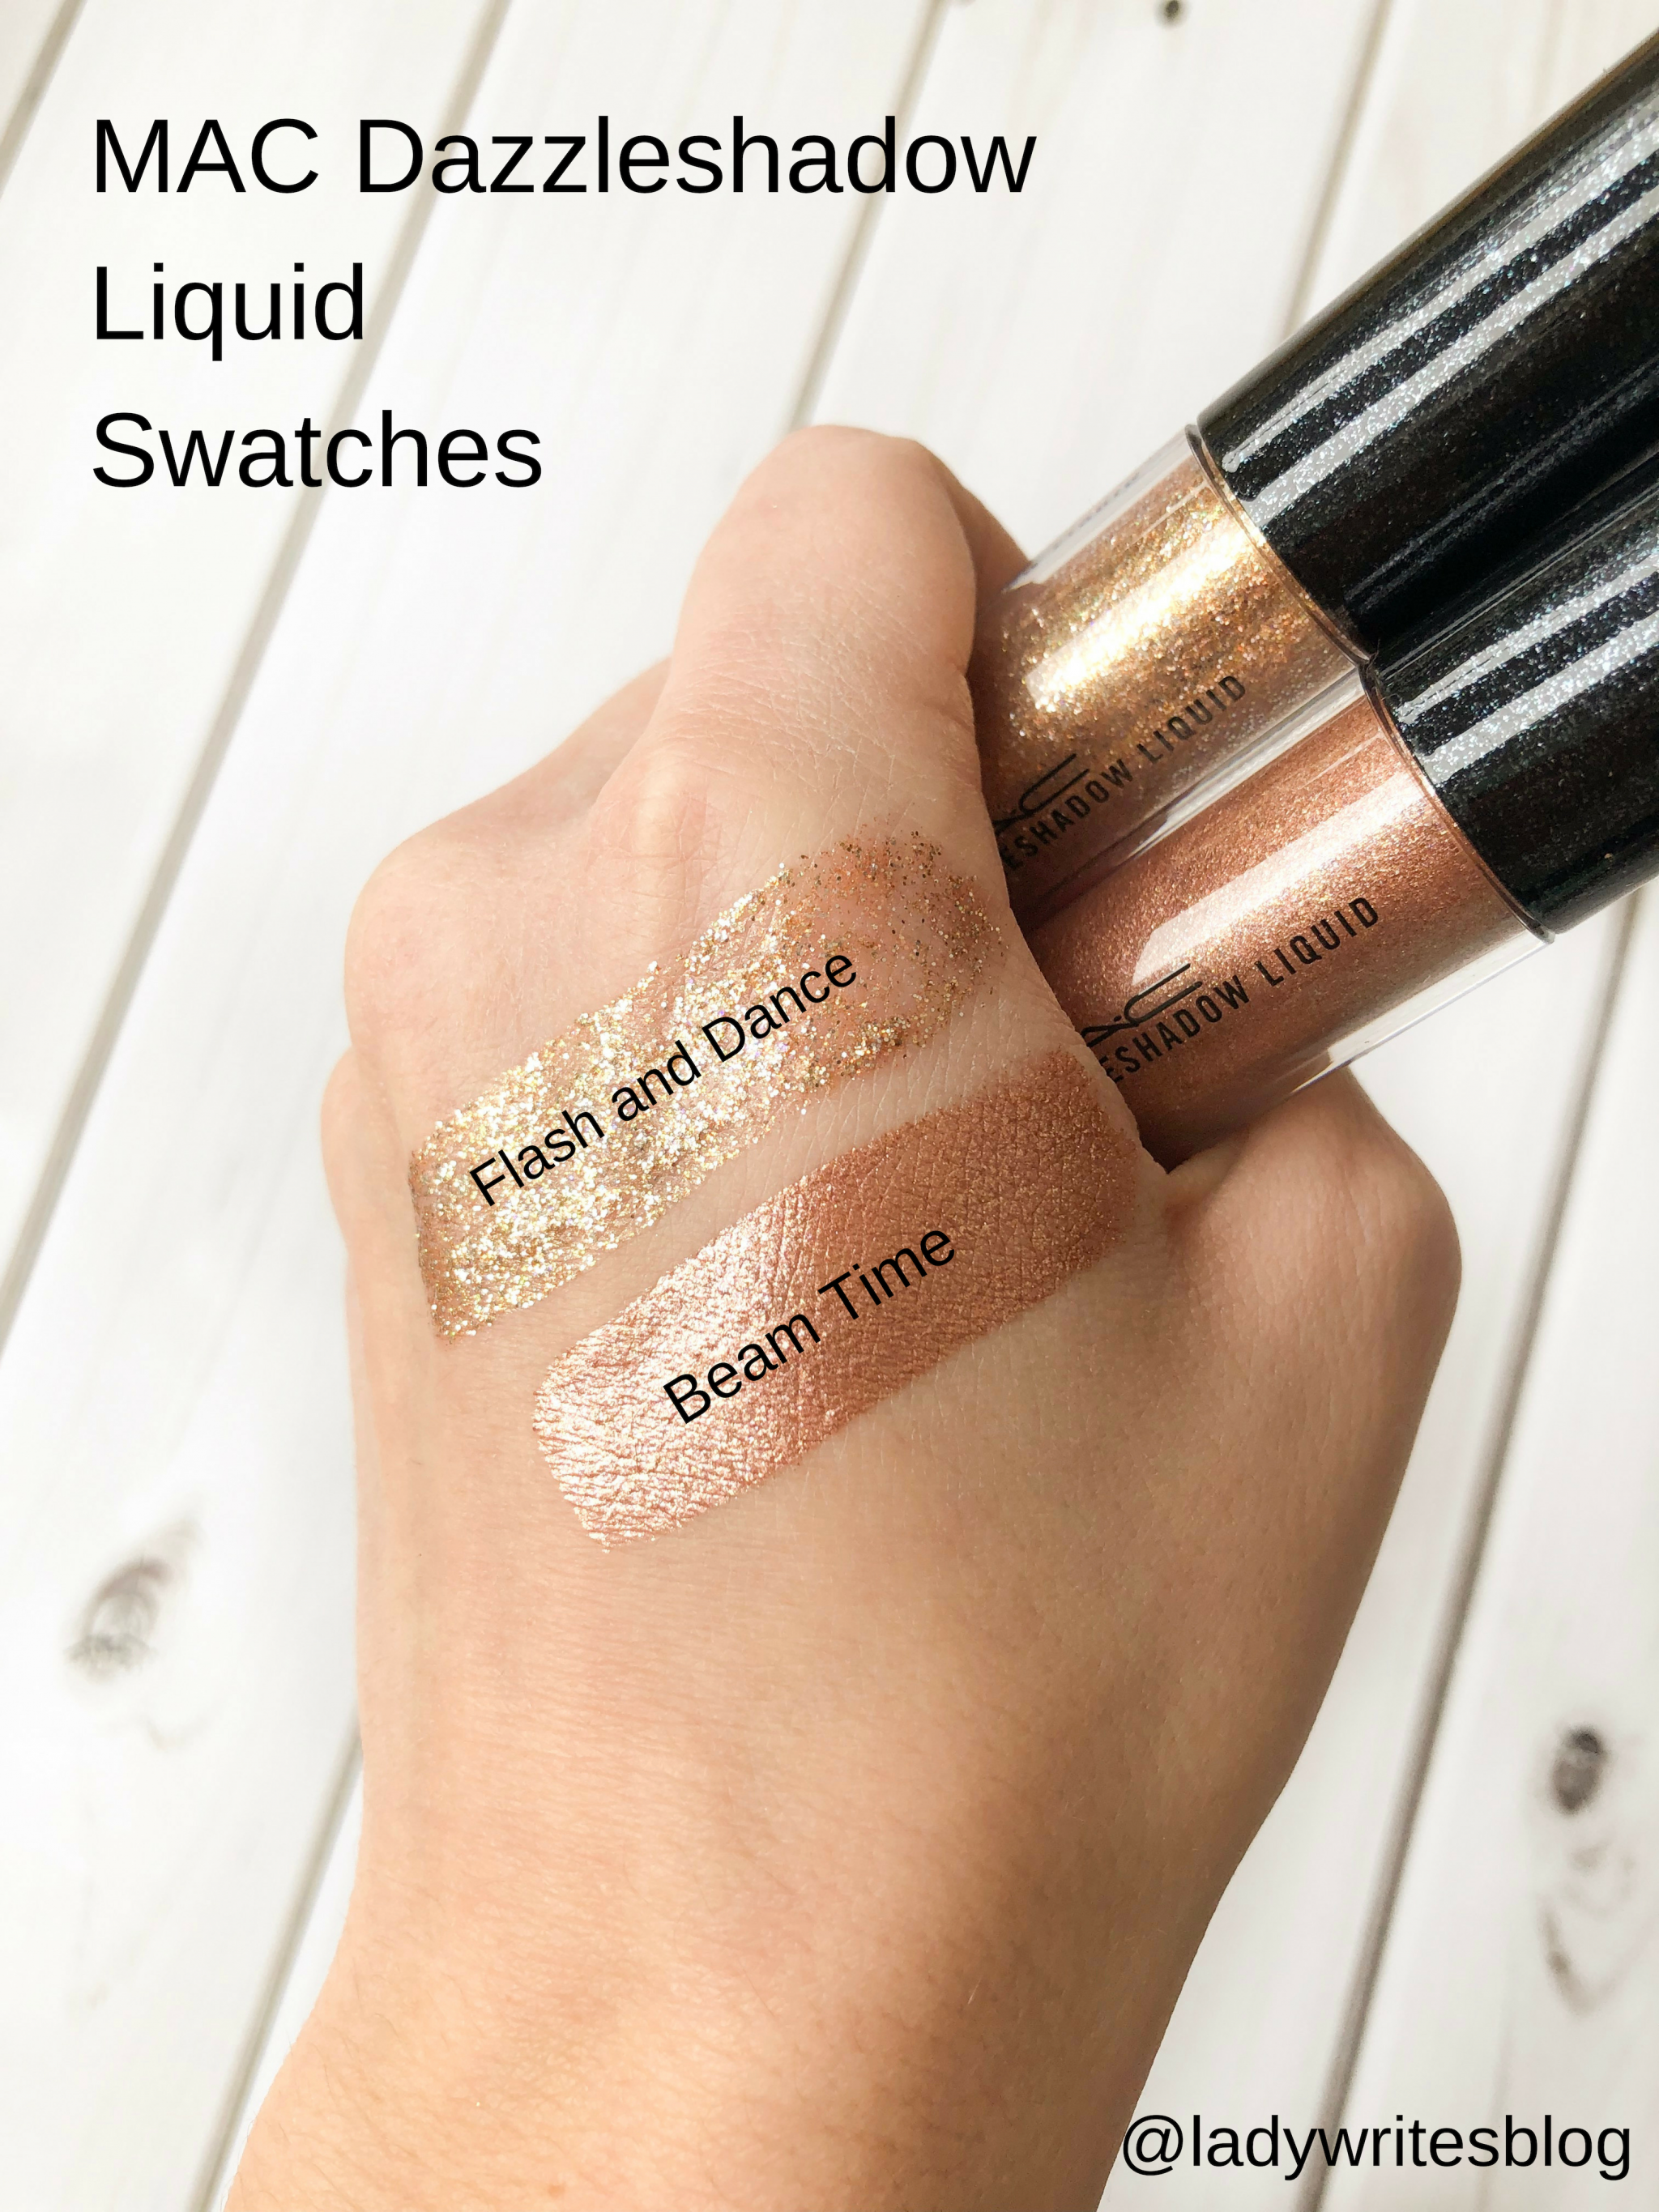 MAC Dazzleshadow Liquid Swatches Flash and Dance Beam Time